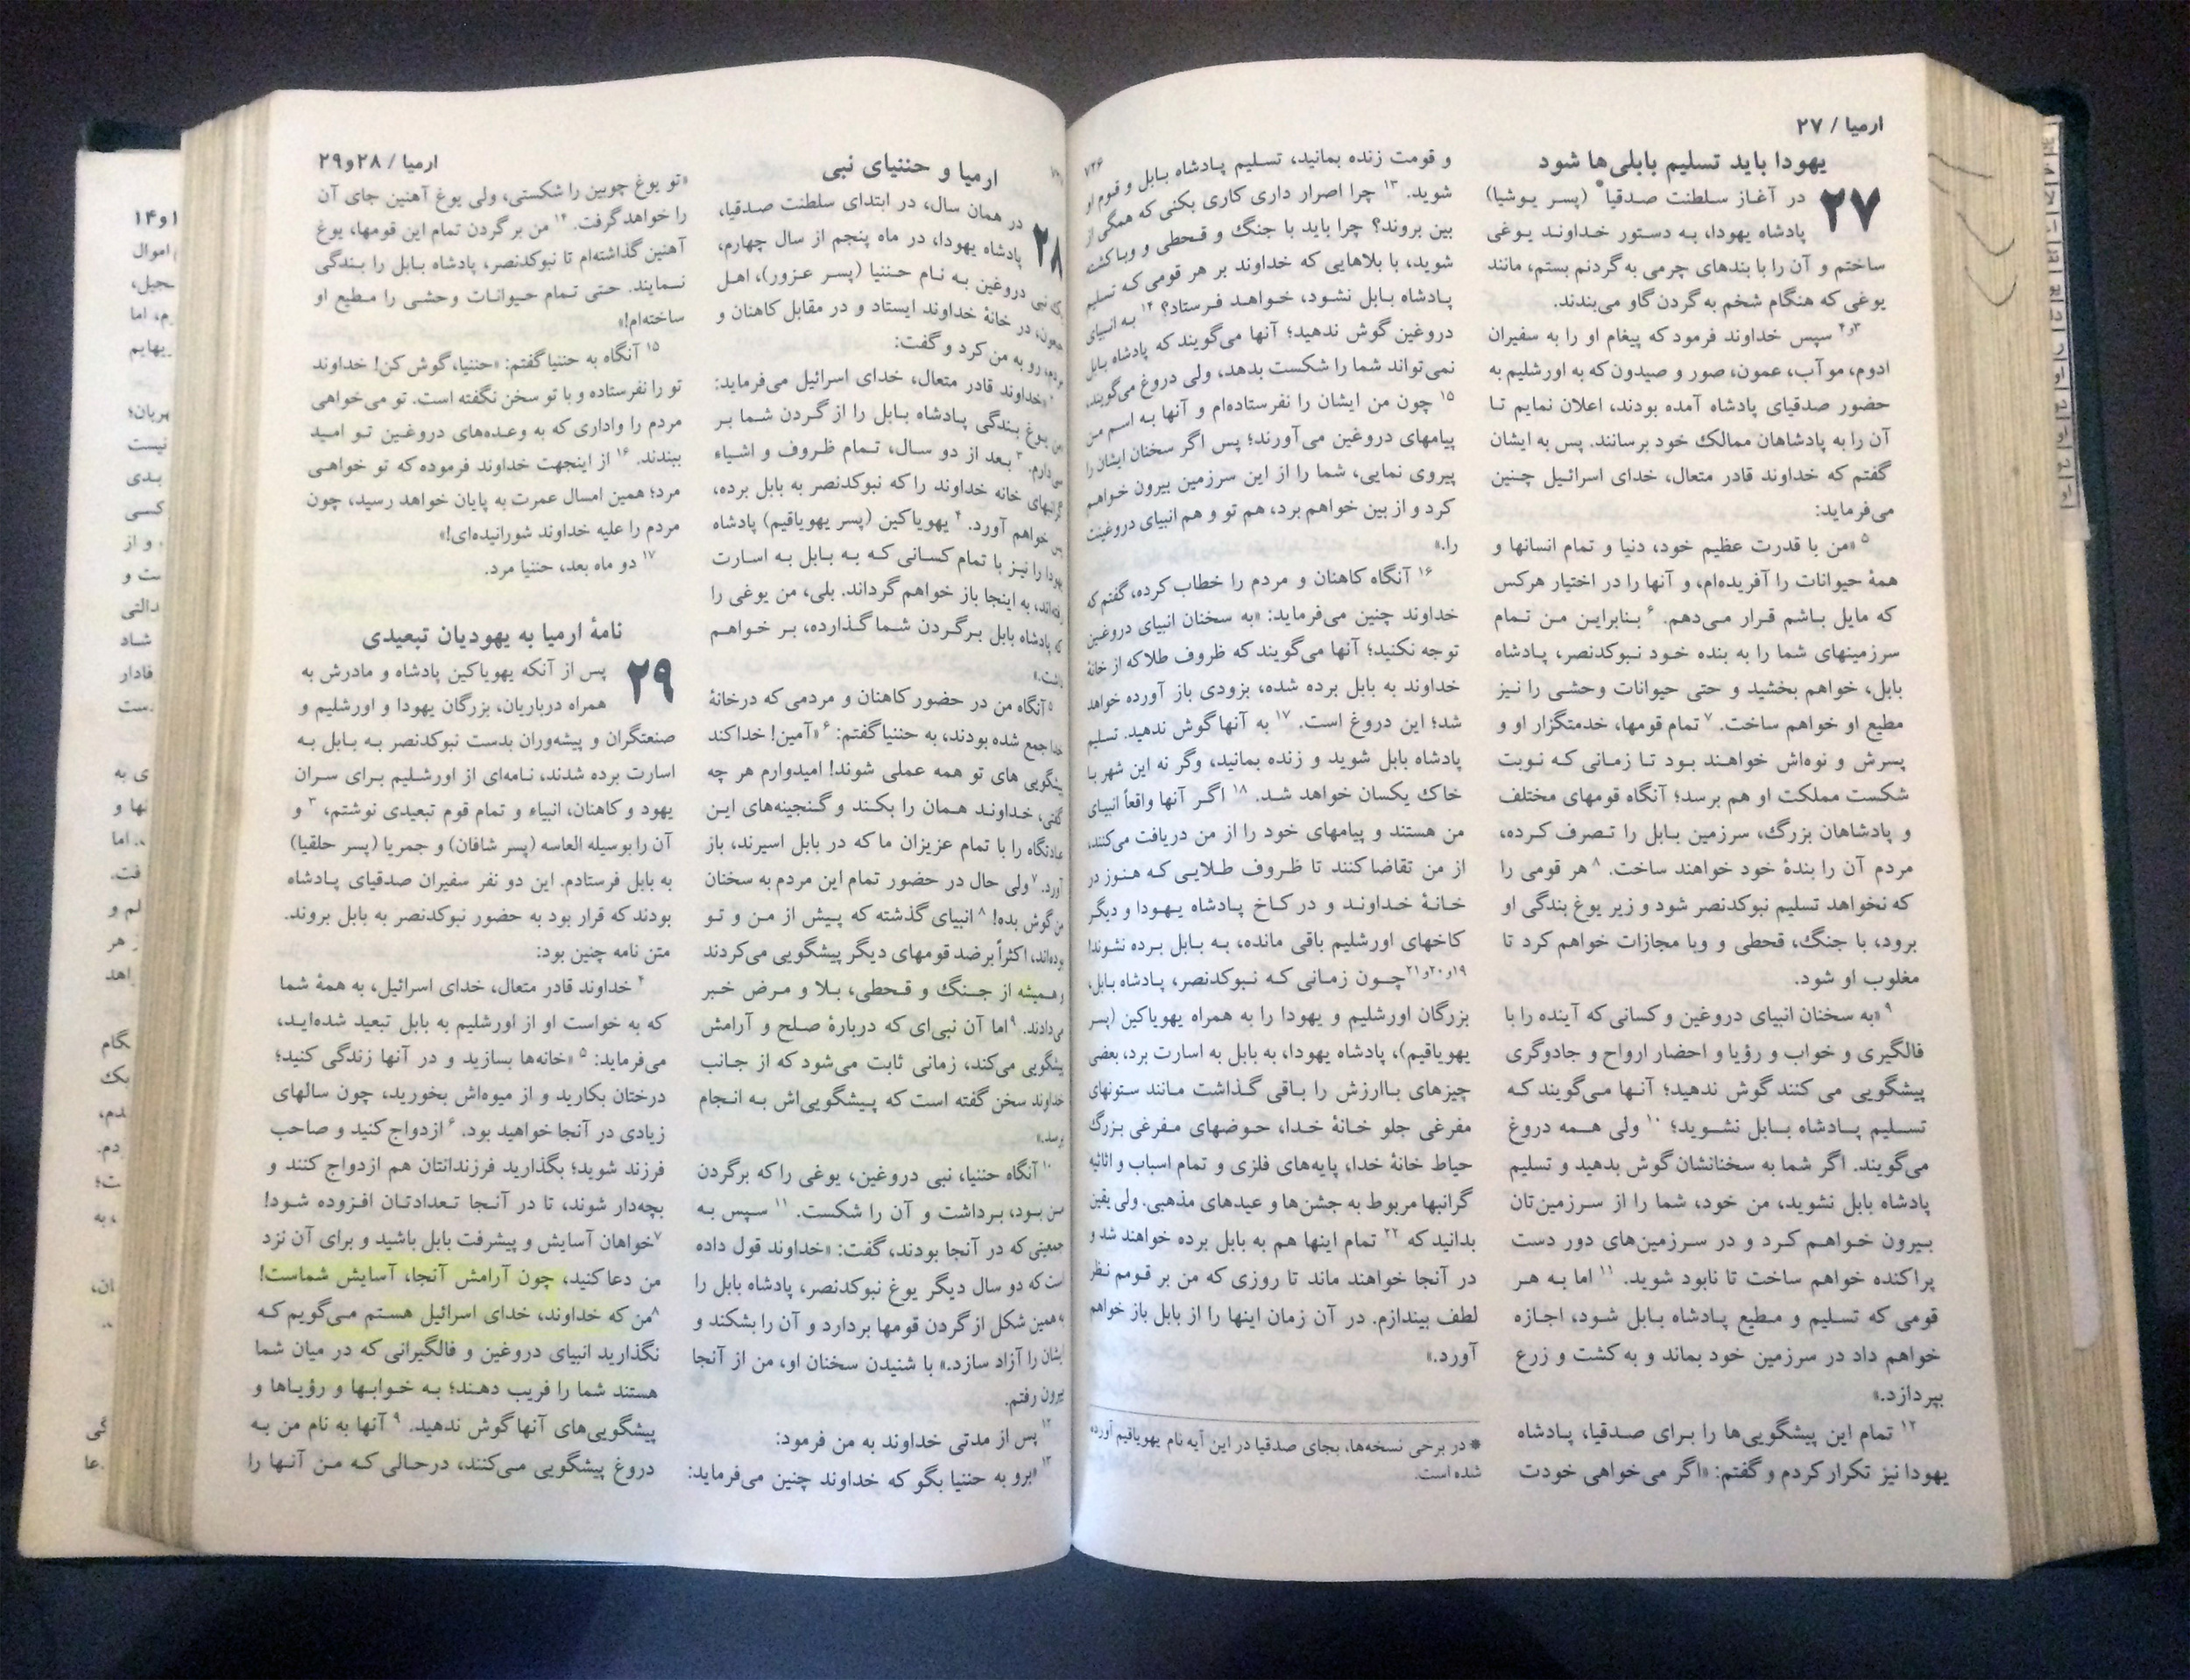 This is a photo of a BIBLE written in the FARSI language! How awesome! =)